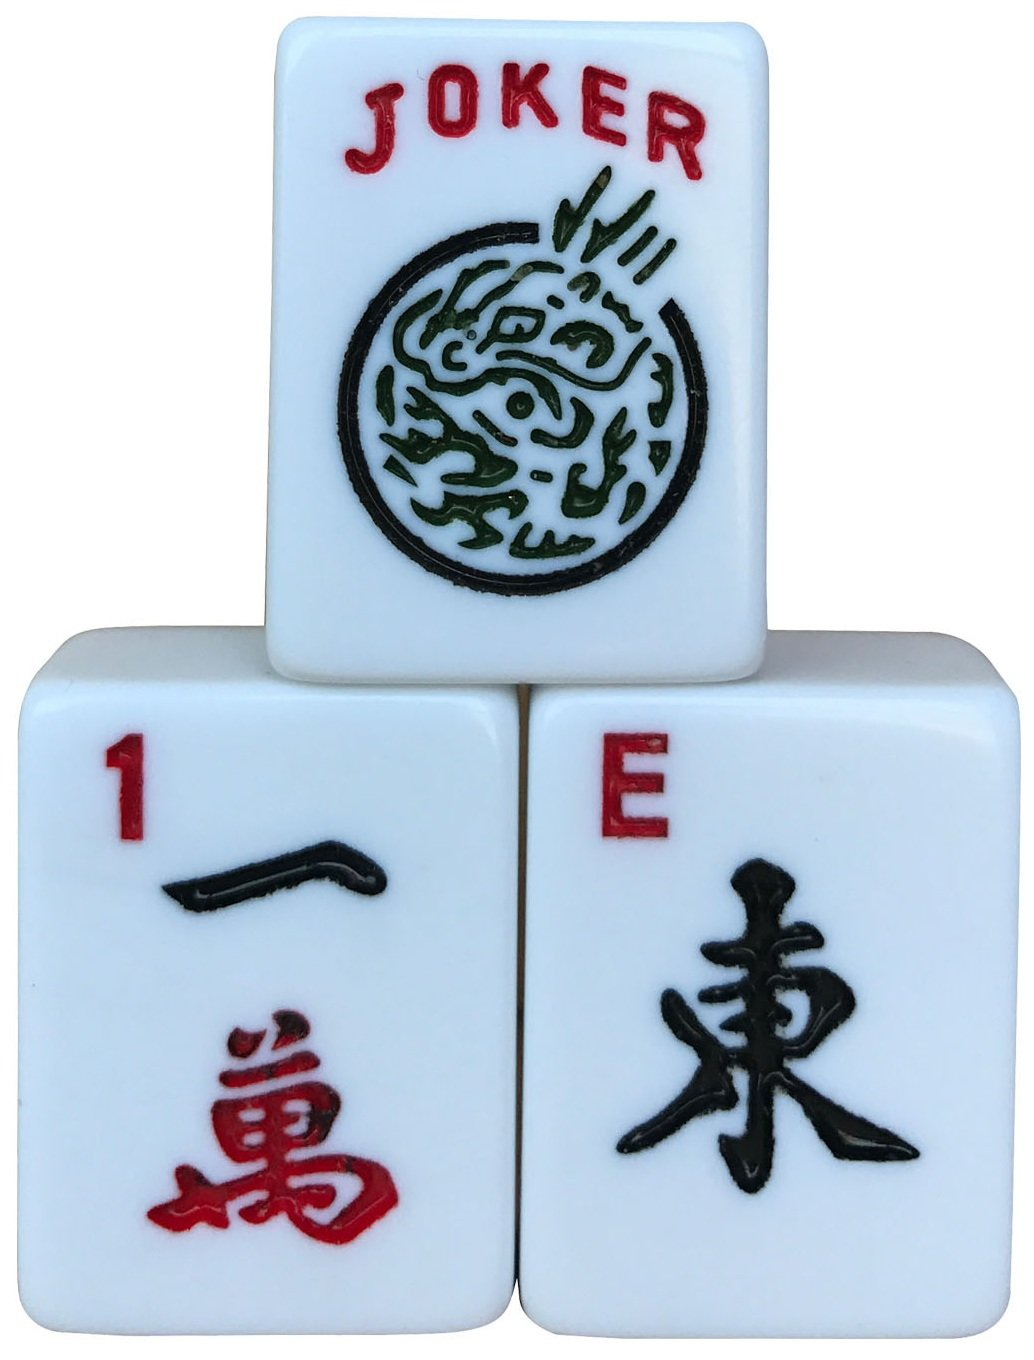 ICNbuys American Mahjong Set, Mah Jongg, 166 White Tiles, with Free Bag, Pushers, Dices, Mahjong Trays, Wind Indicator, Chips, English Instruction and Mahjong Matt, All the Accessories Included by ICNBUYS